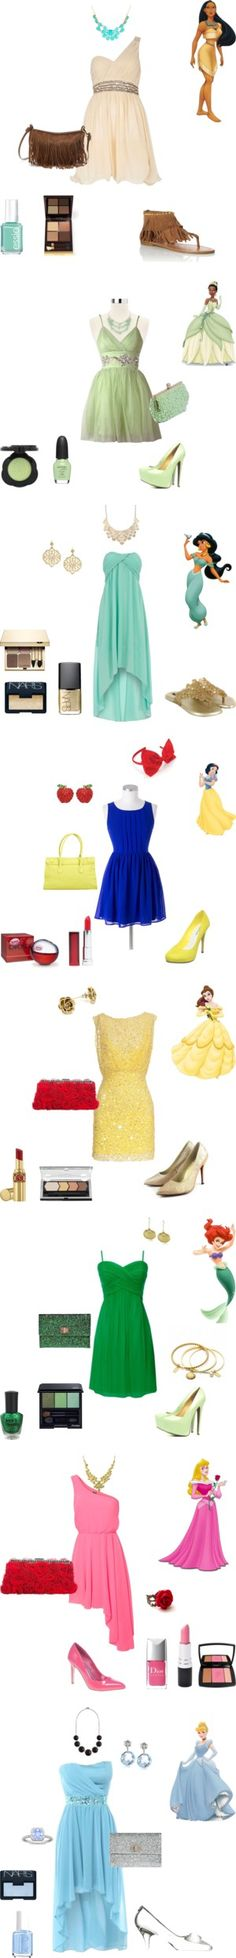 """Disney Princess Inspired"" by maddie-callen on Polyvore"